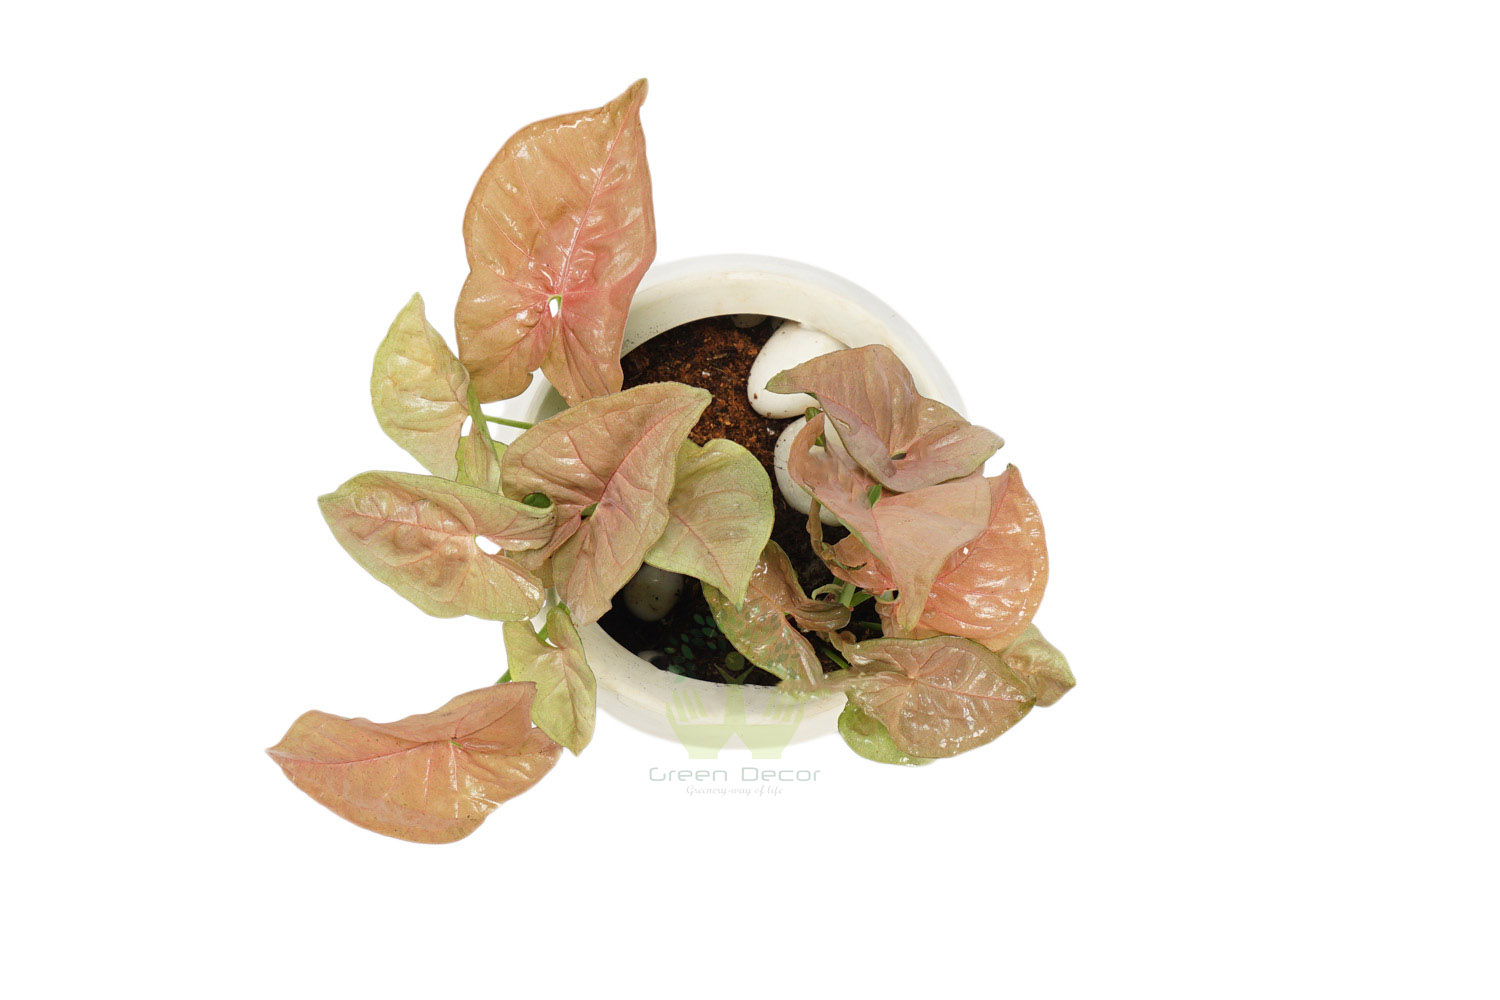 Buy Syngonium Pink Plants , White Pots and seeds in Delhi NCR by the best online nursery shop Greendecor.